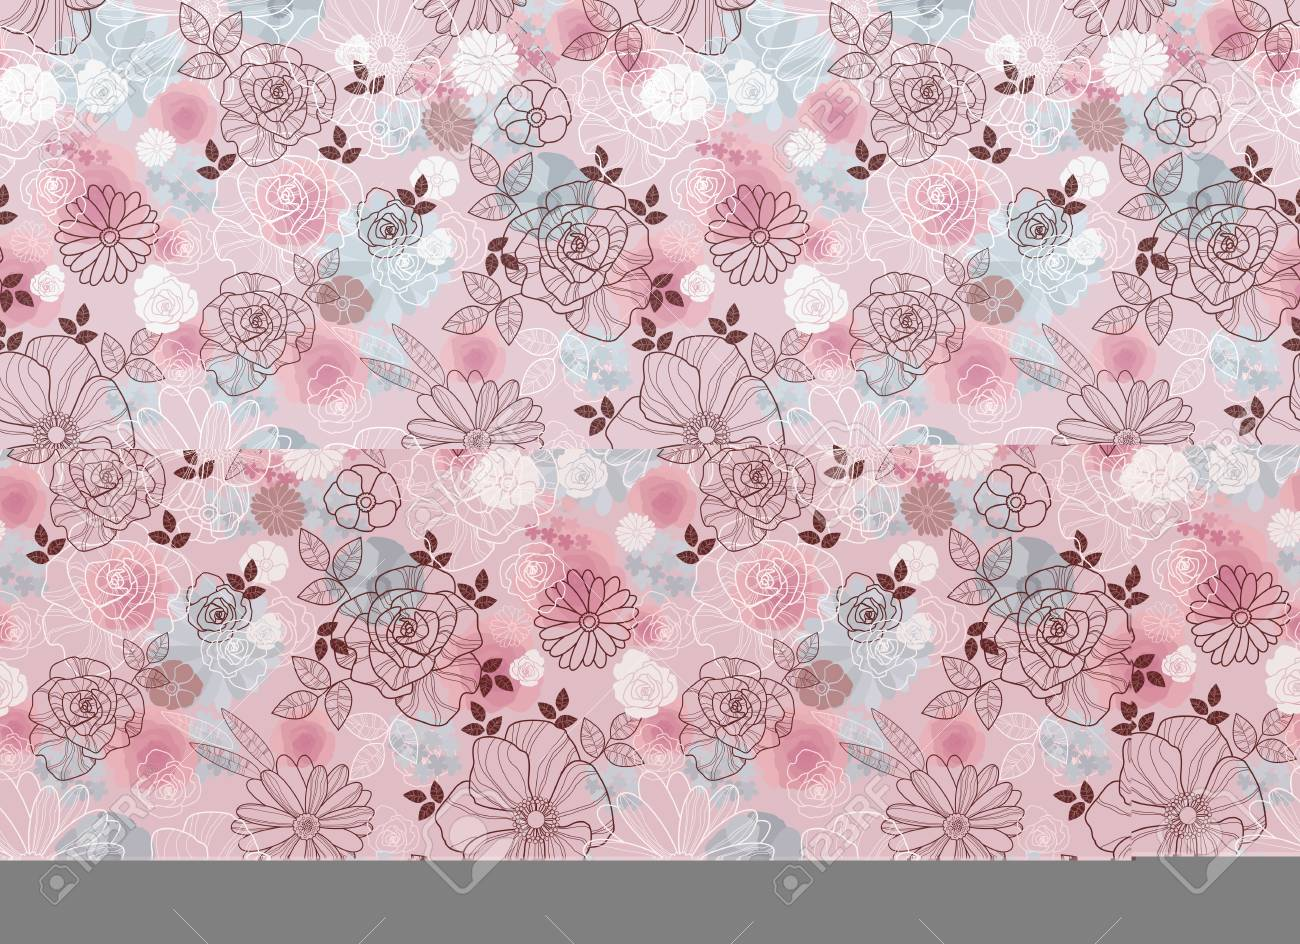 Vector illustration of seamless floral gentle pattern - 88524094